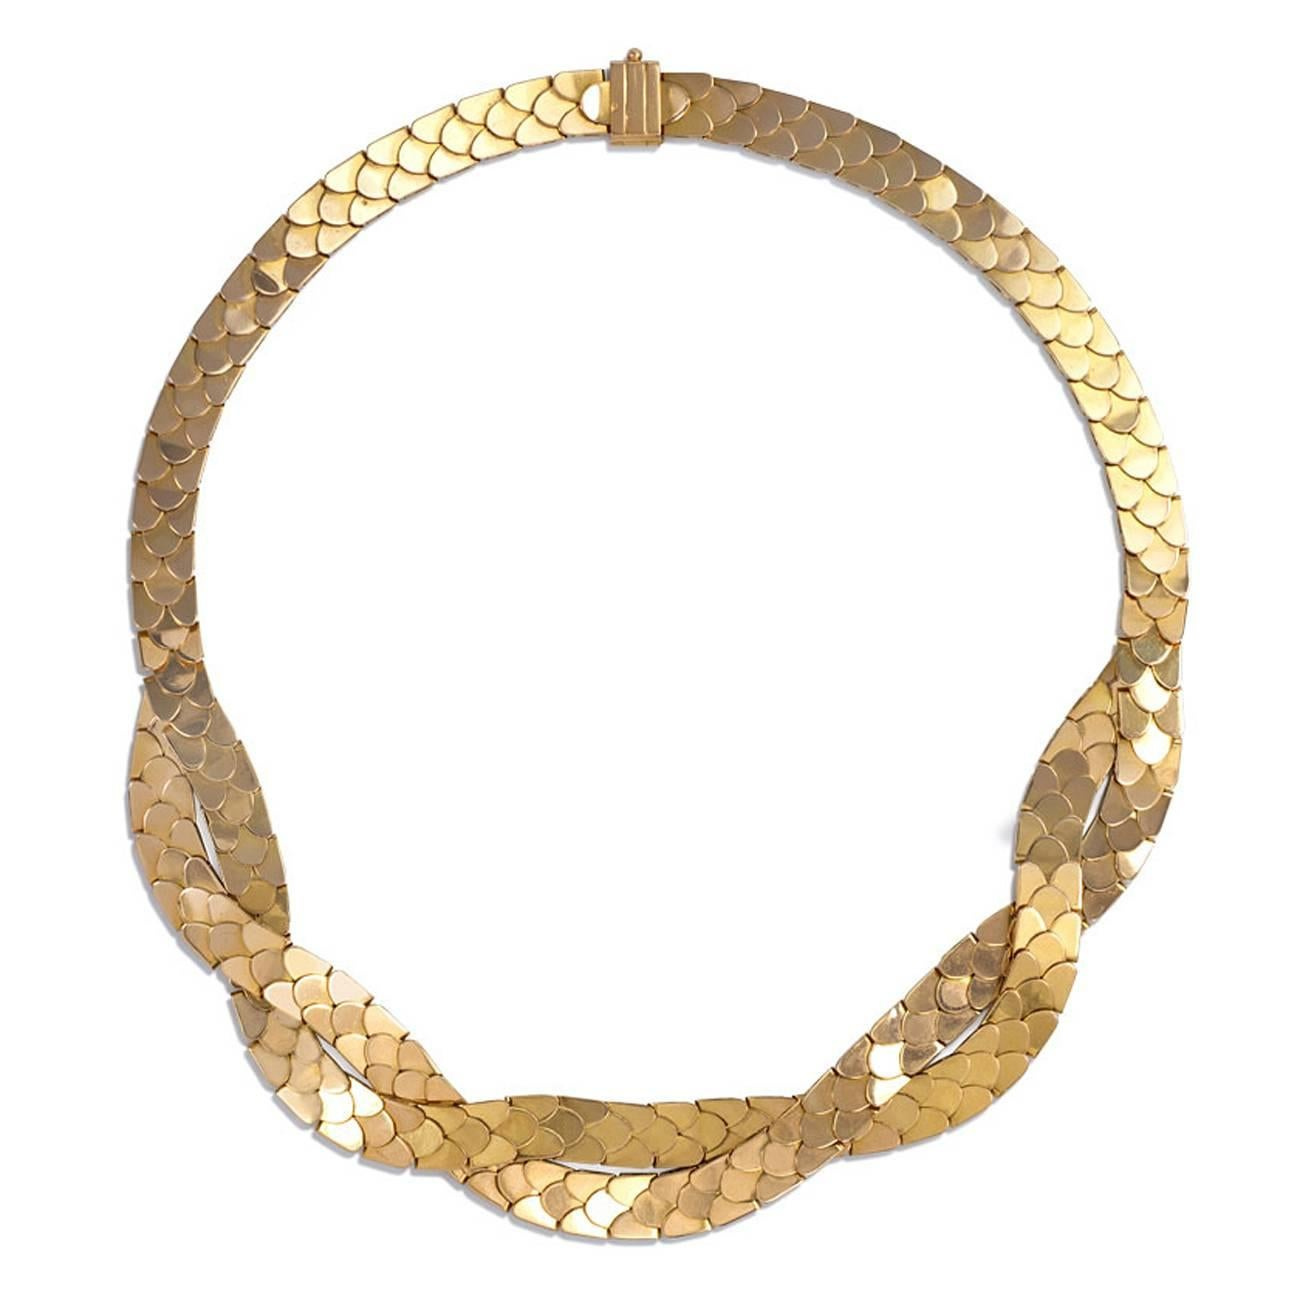 1940s French Gold Reversible Necklace with Brick Link and Scaled Patterns